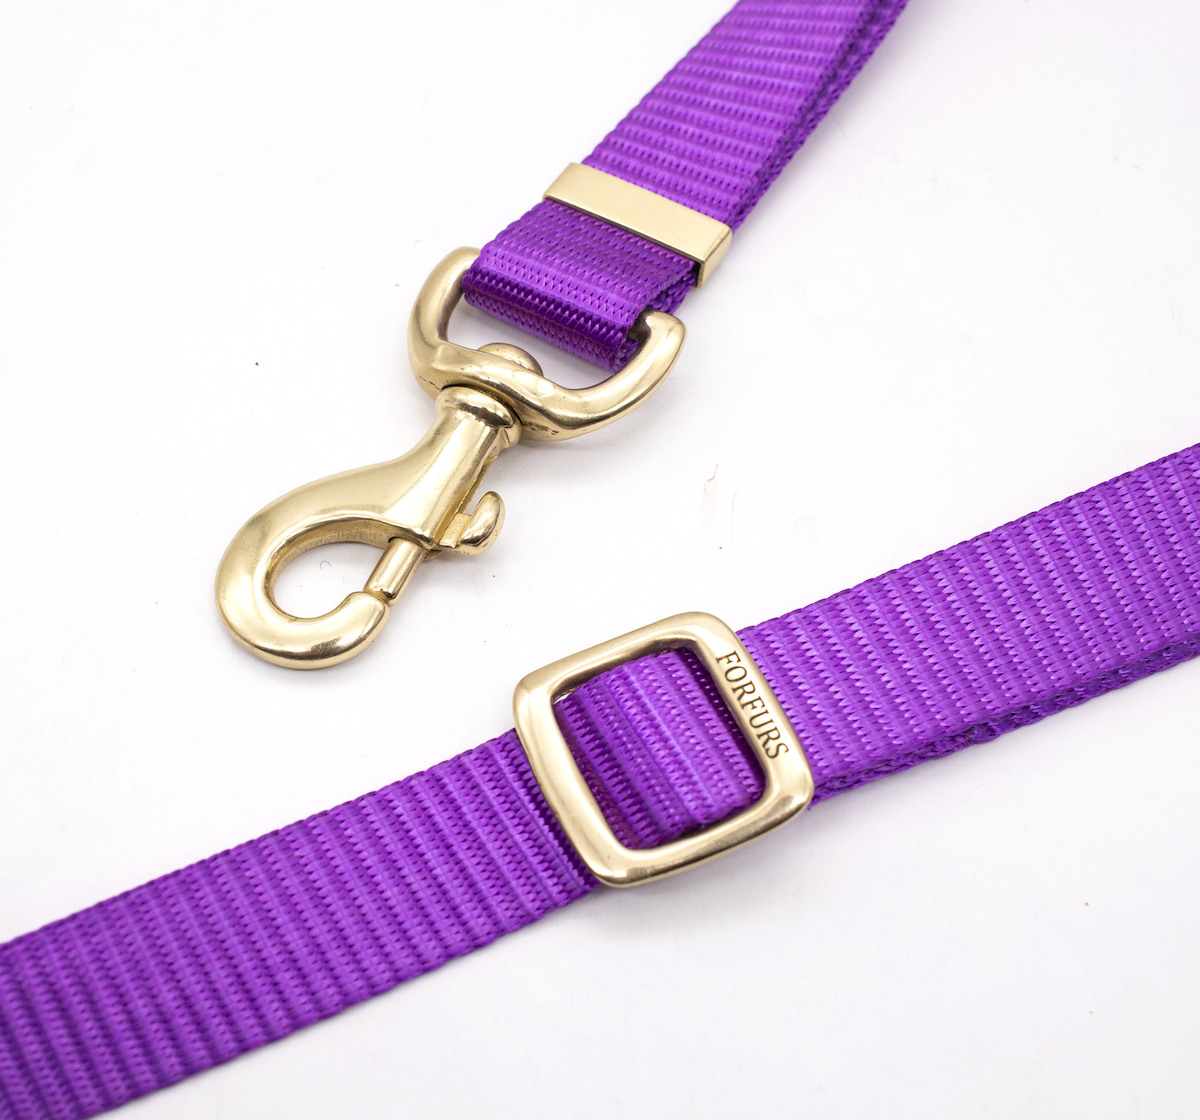 Forfurs Adjustable Protean All Breed Leash  - Ultra Violet